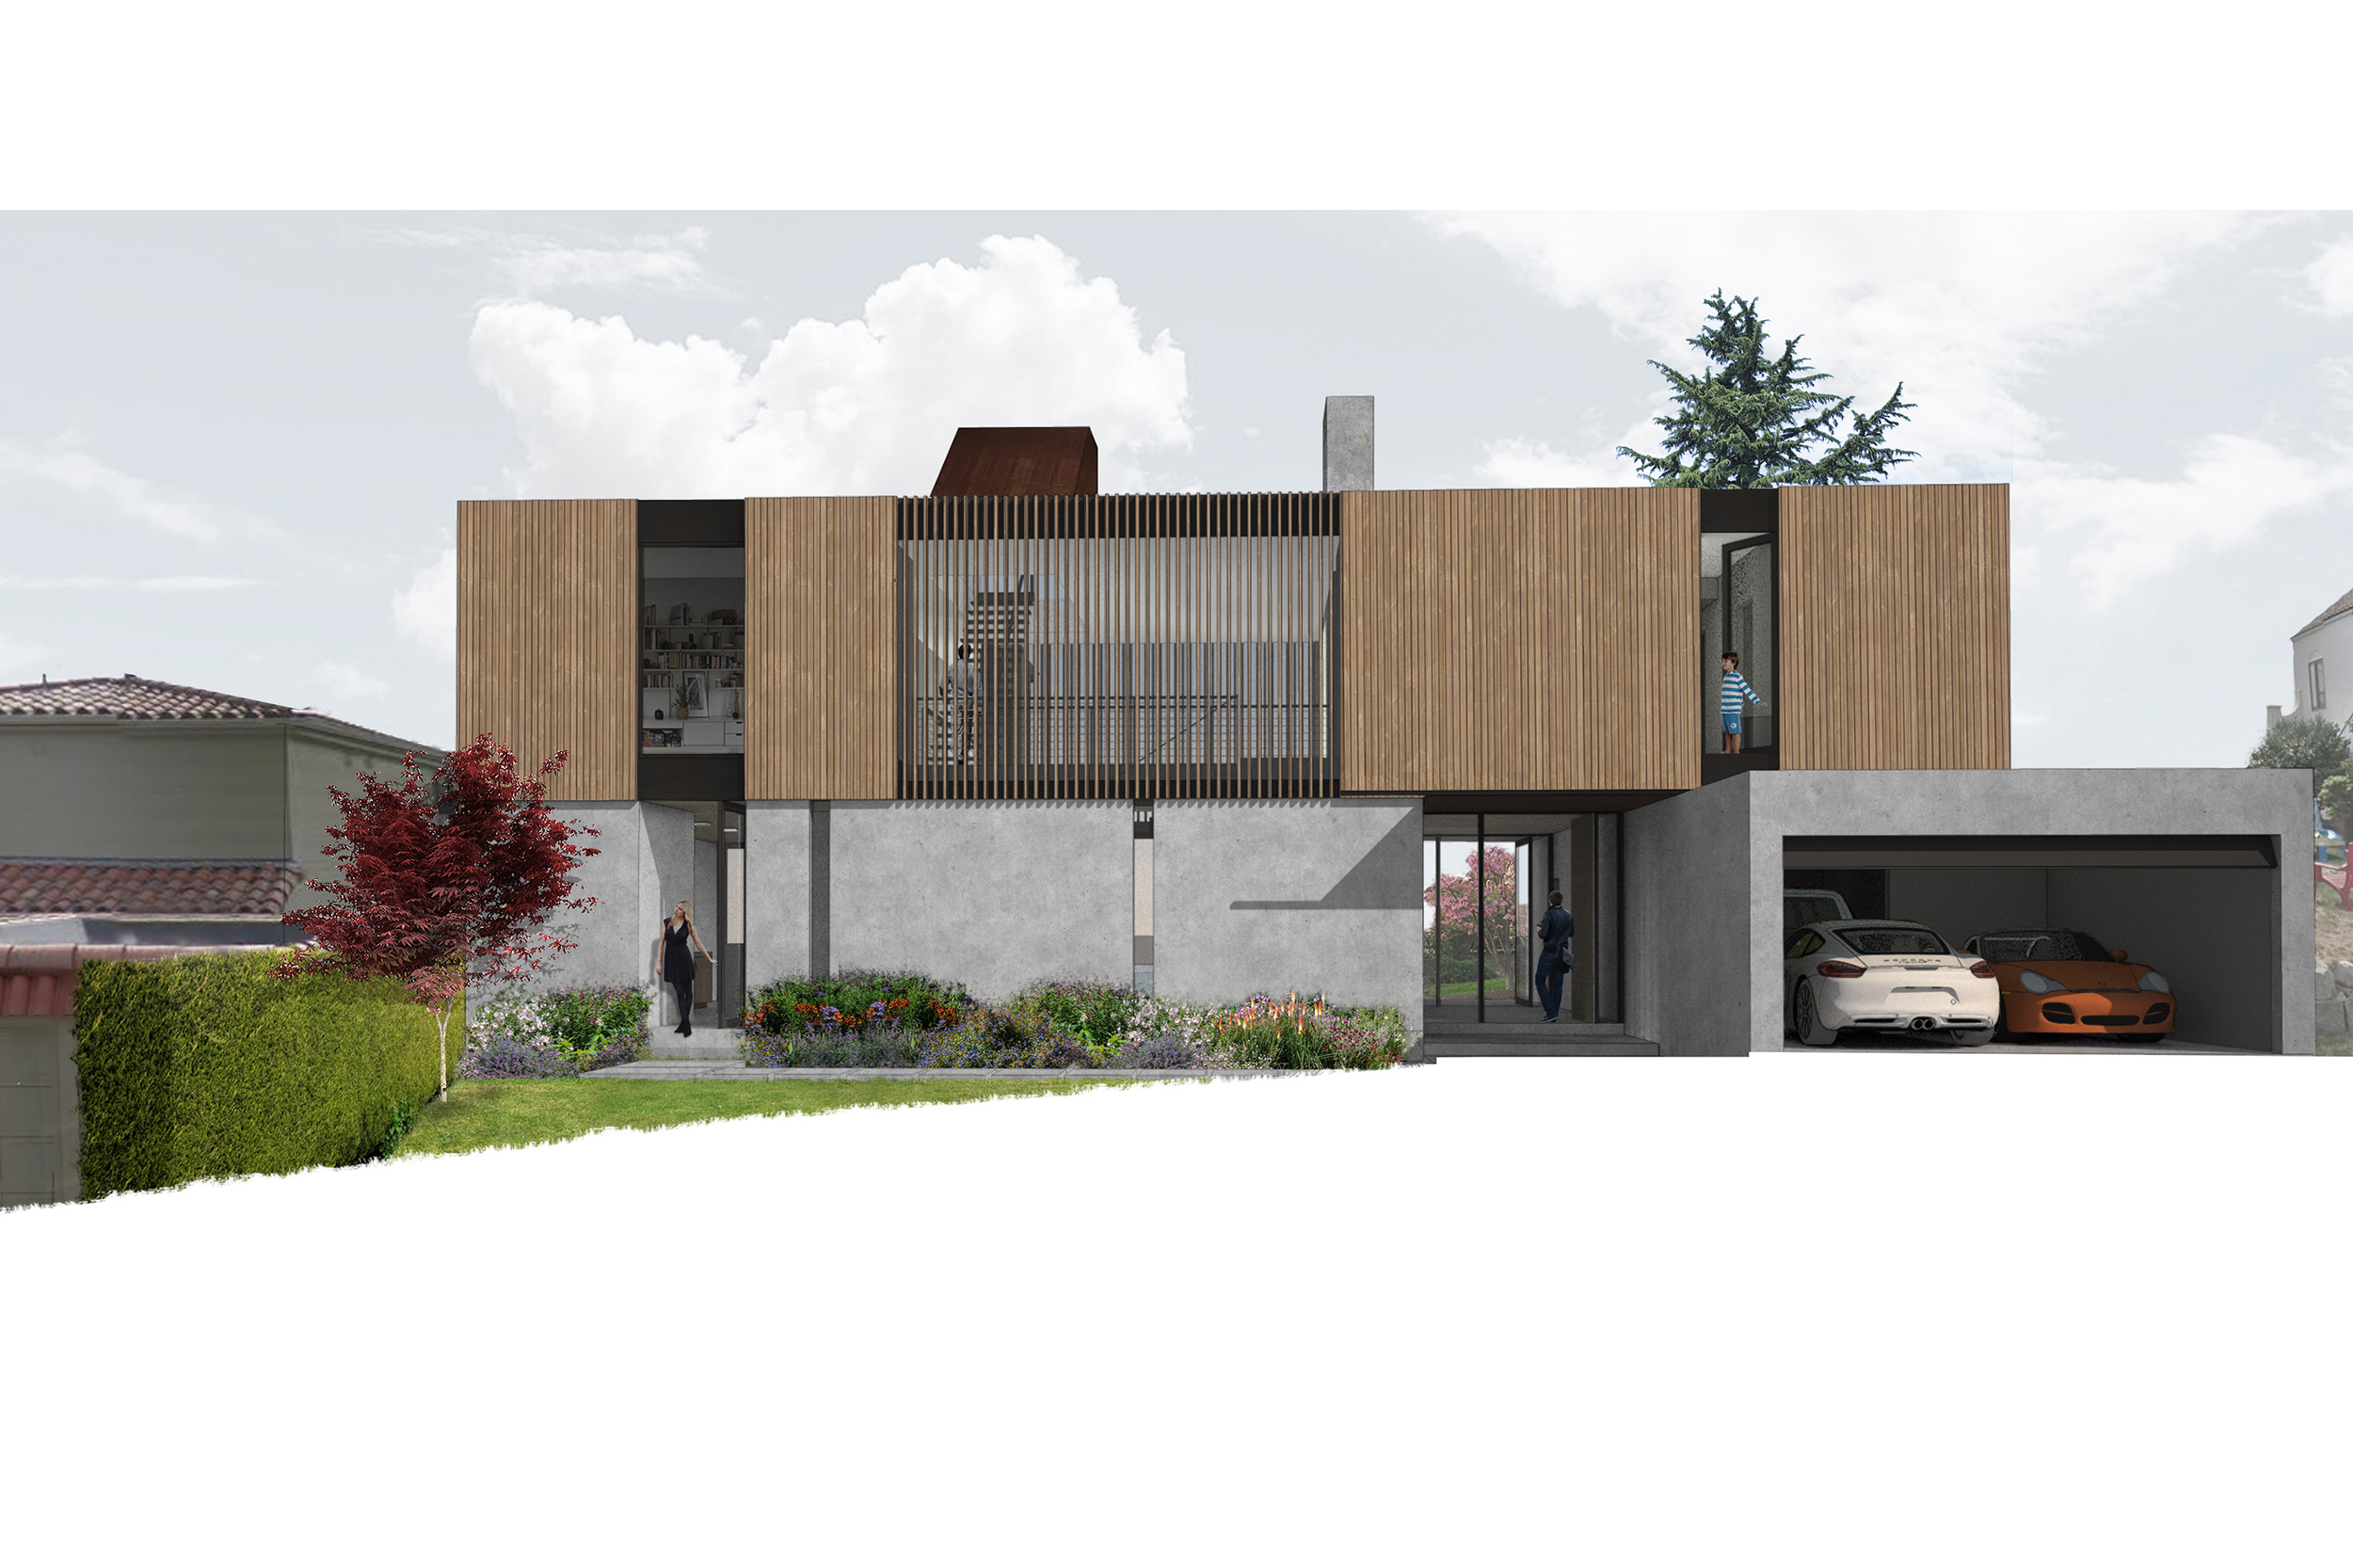 goCstudio_magnolia house_north rendering.jpg